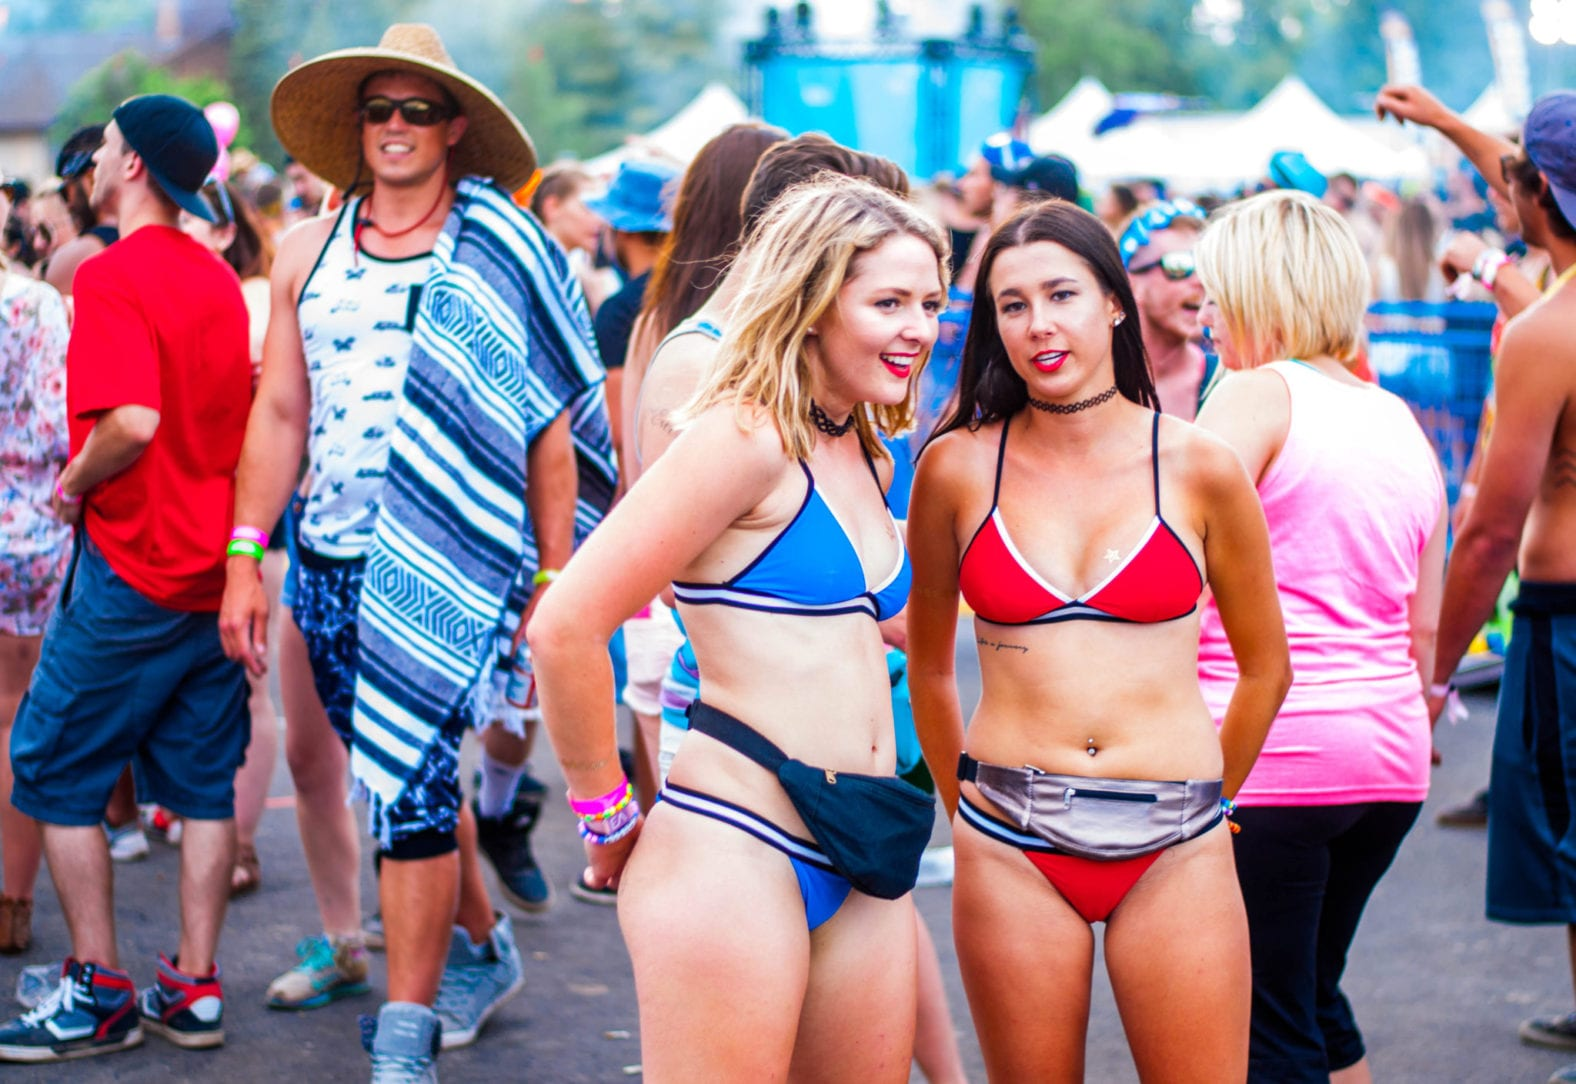 The importance of colour co-ordination should never be under-estimated. In this case, matching bikinis in complimentary colours, lets the world know that they're crew.